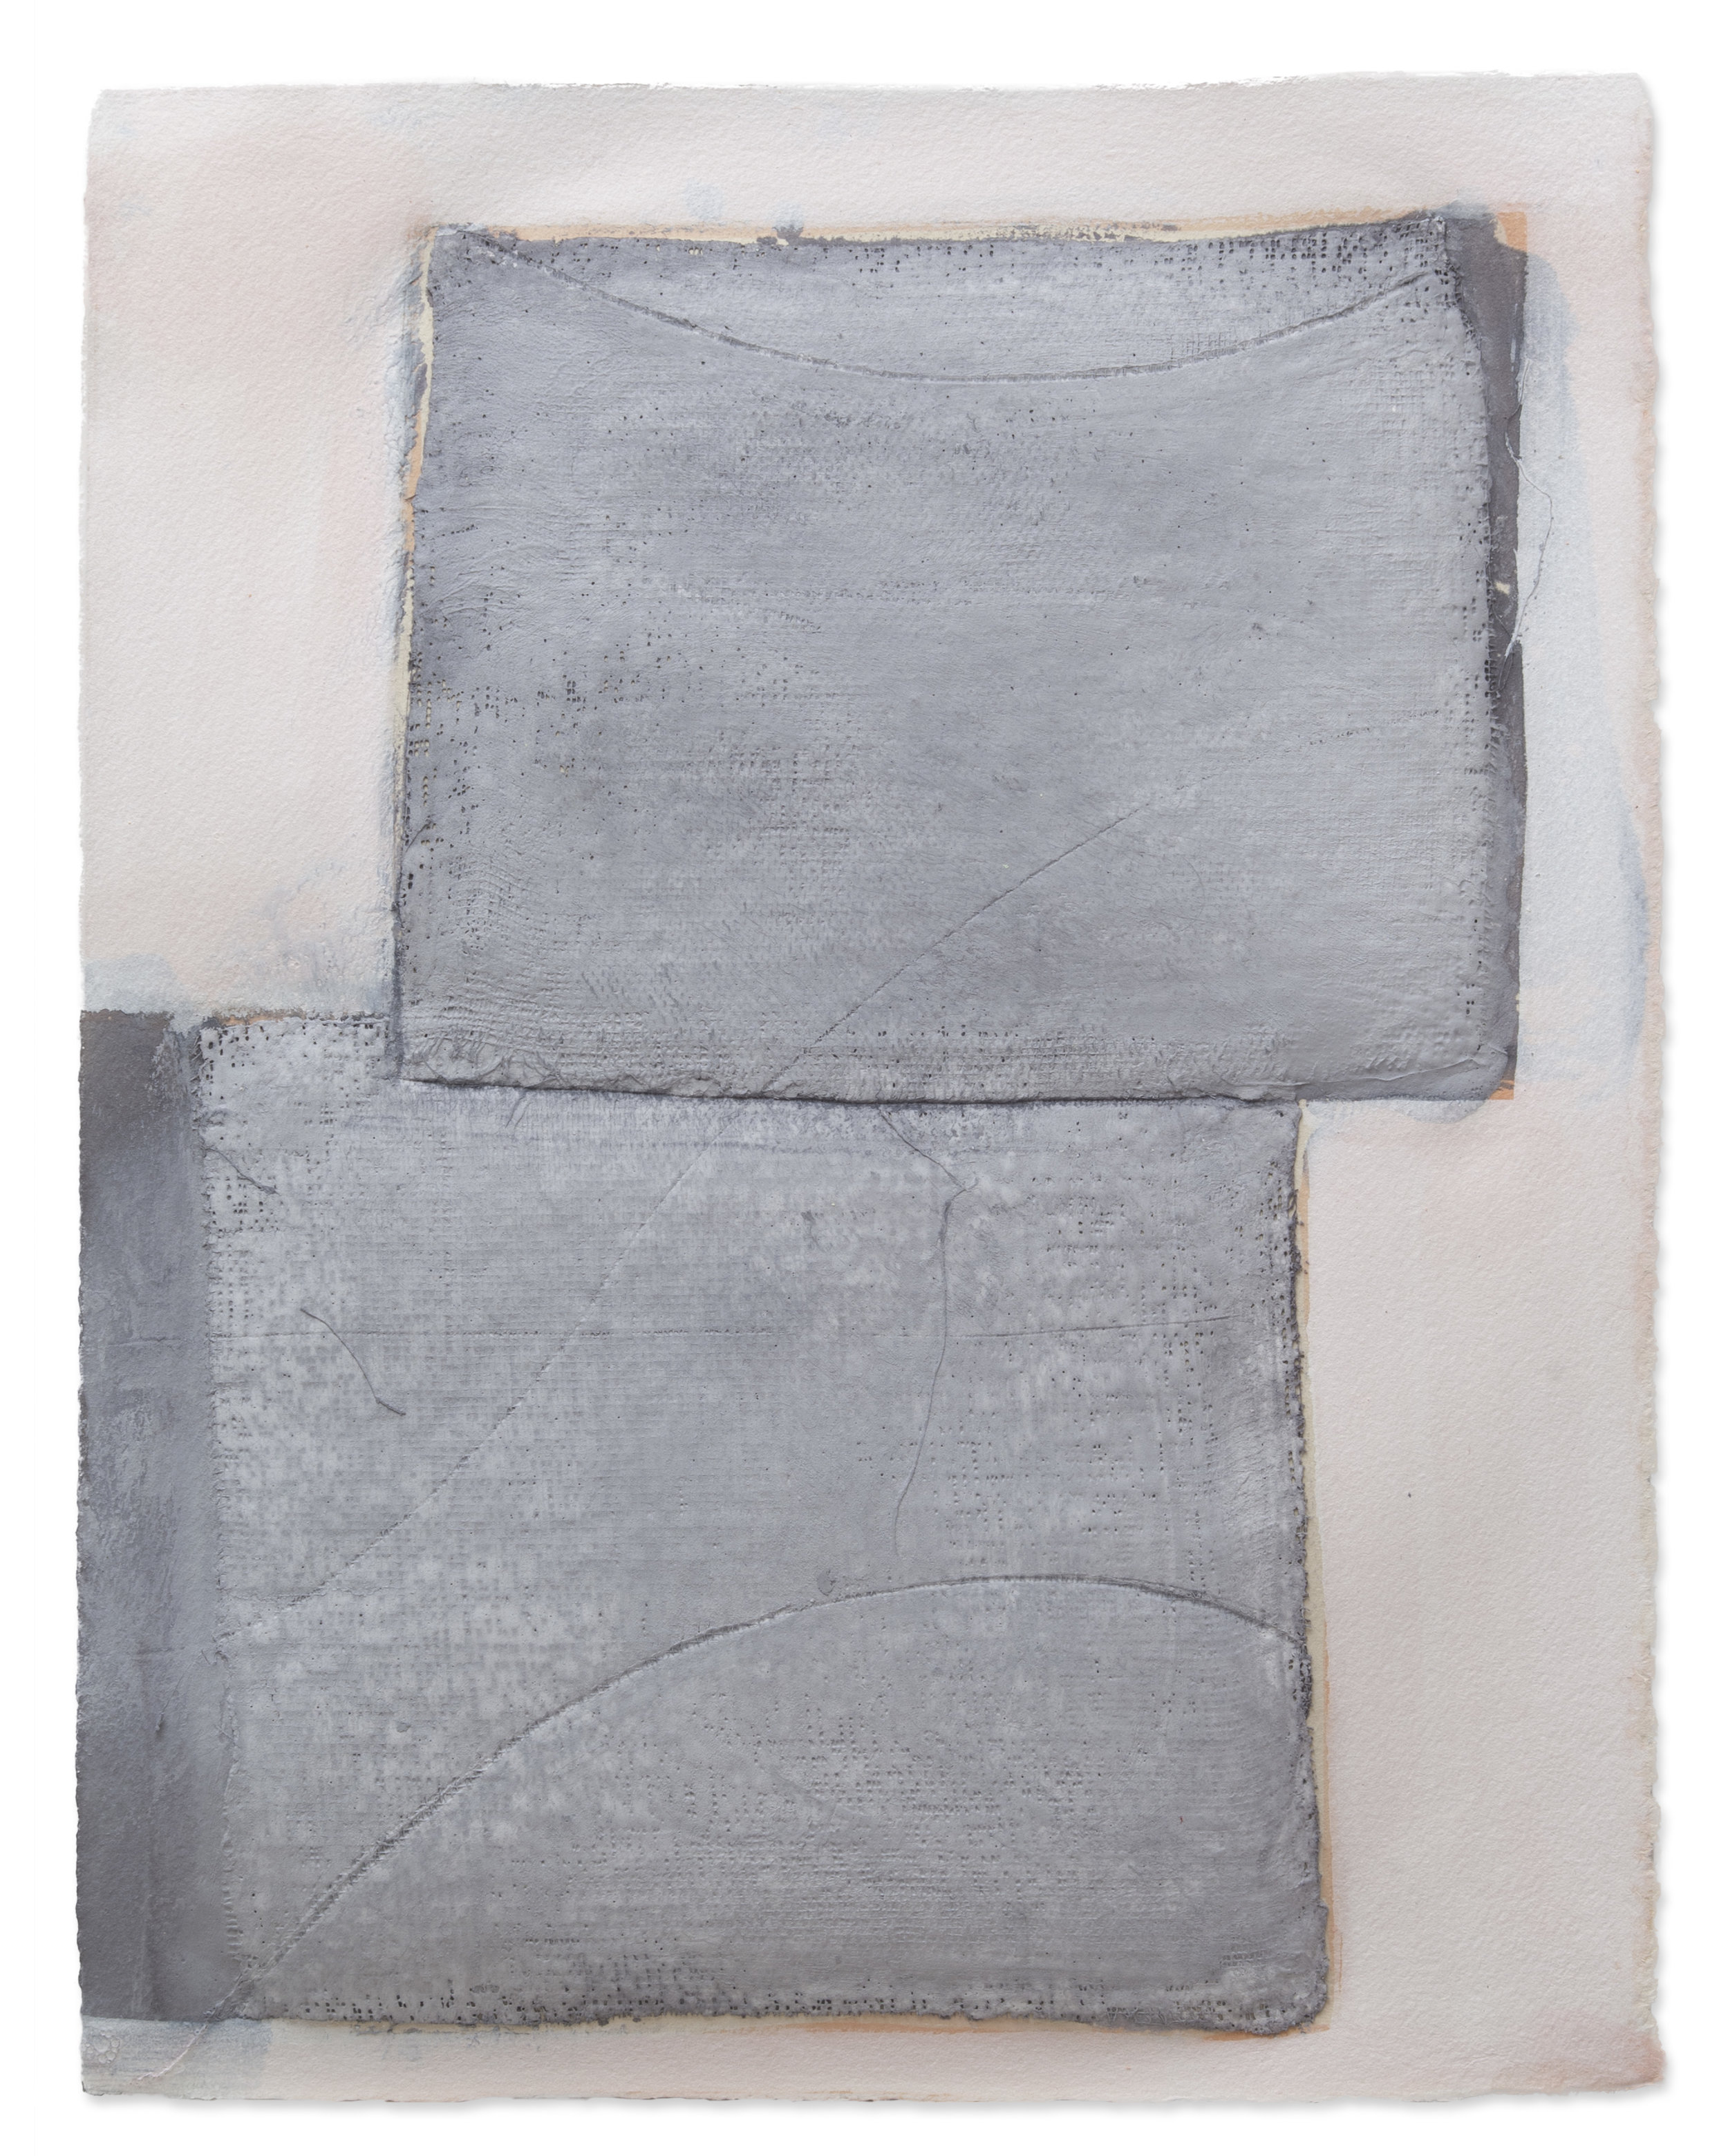 Grey Squared, 2018, plaster, paint on paper, 14 x 18 in, SOLD